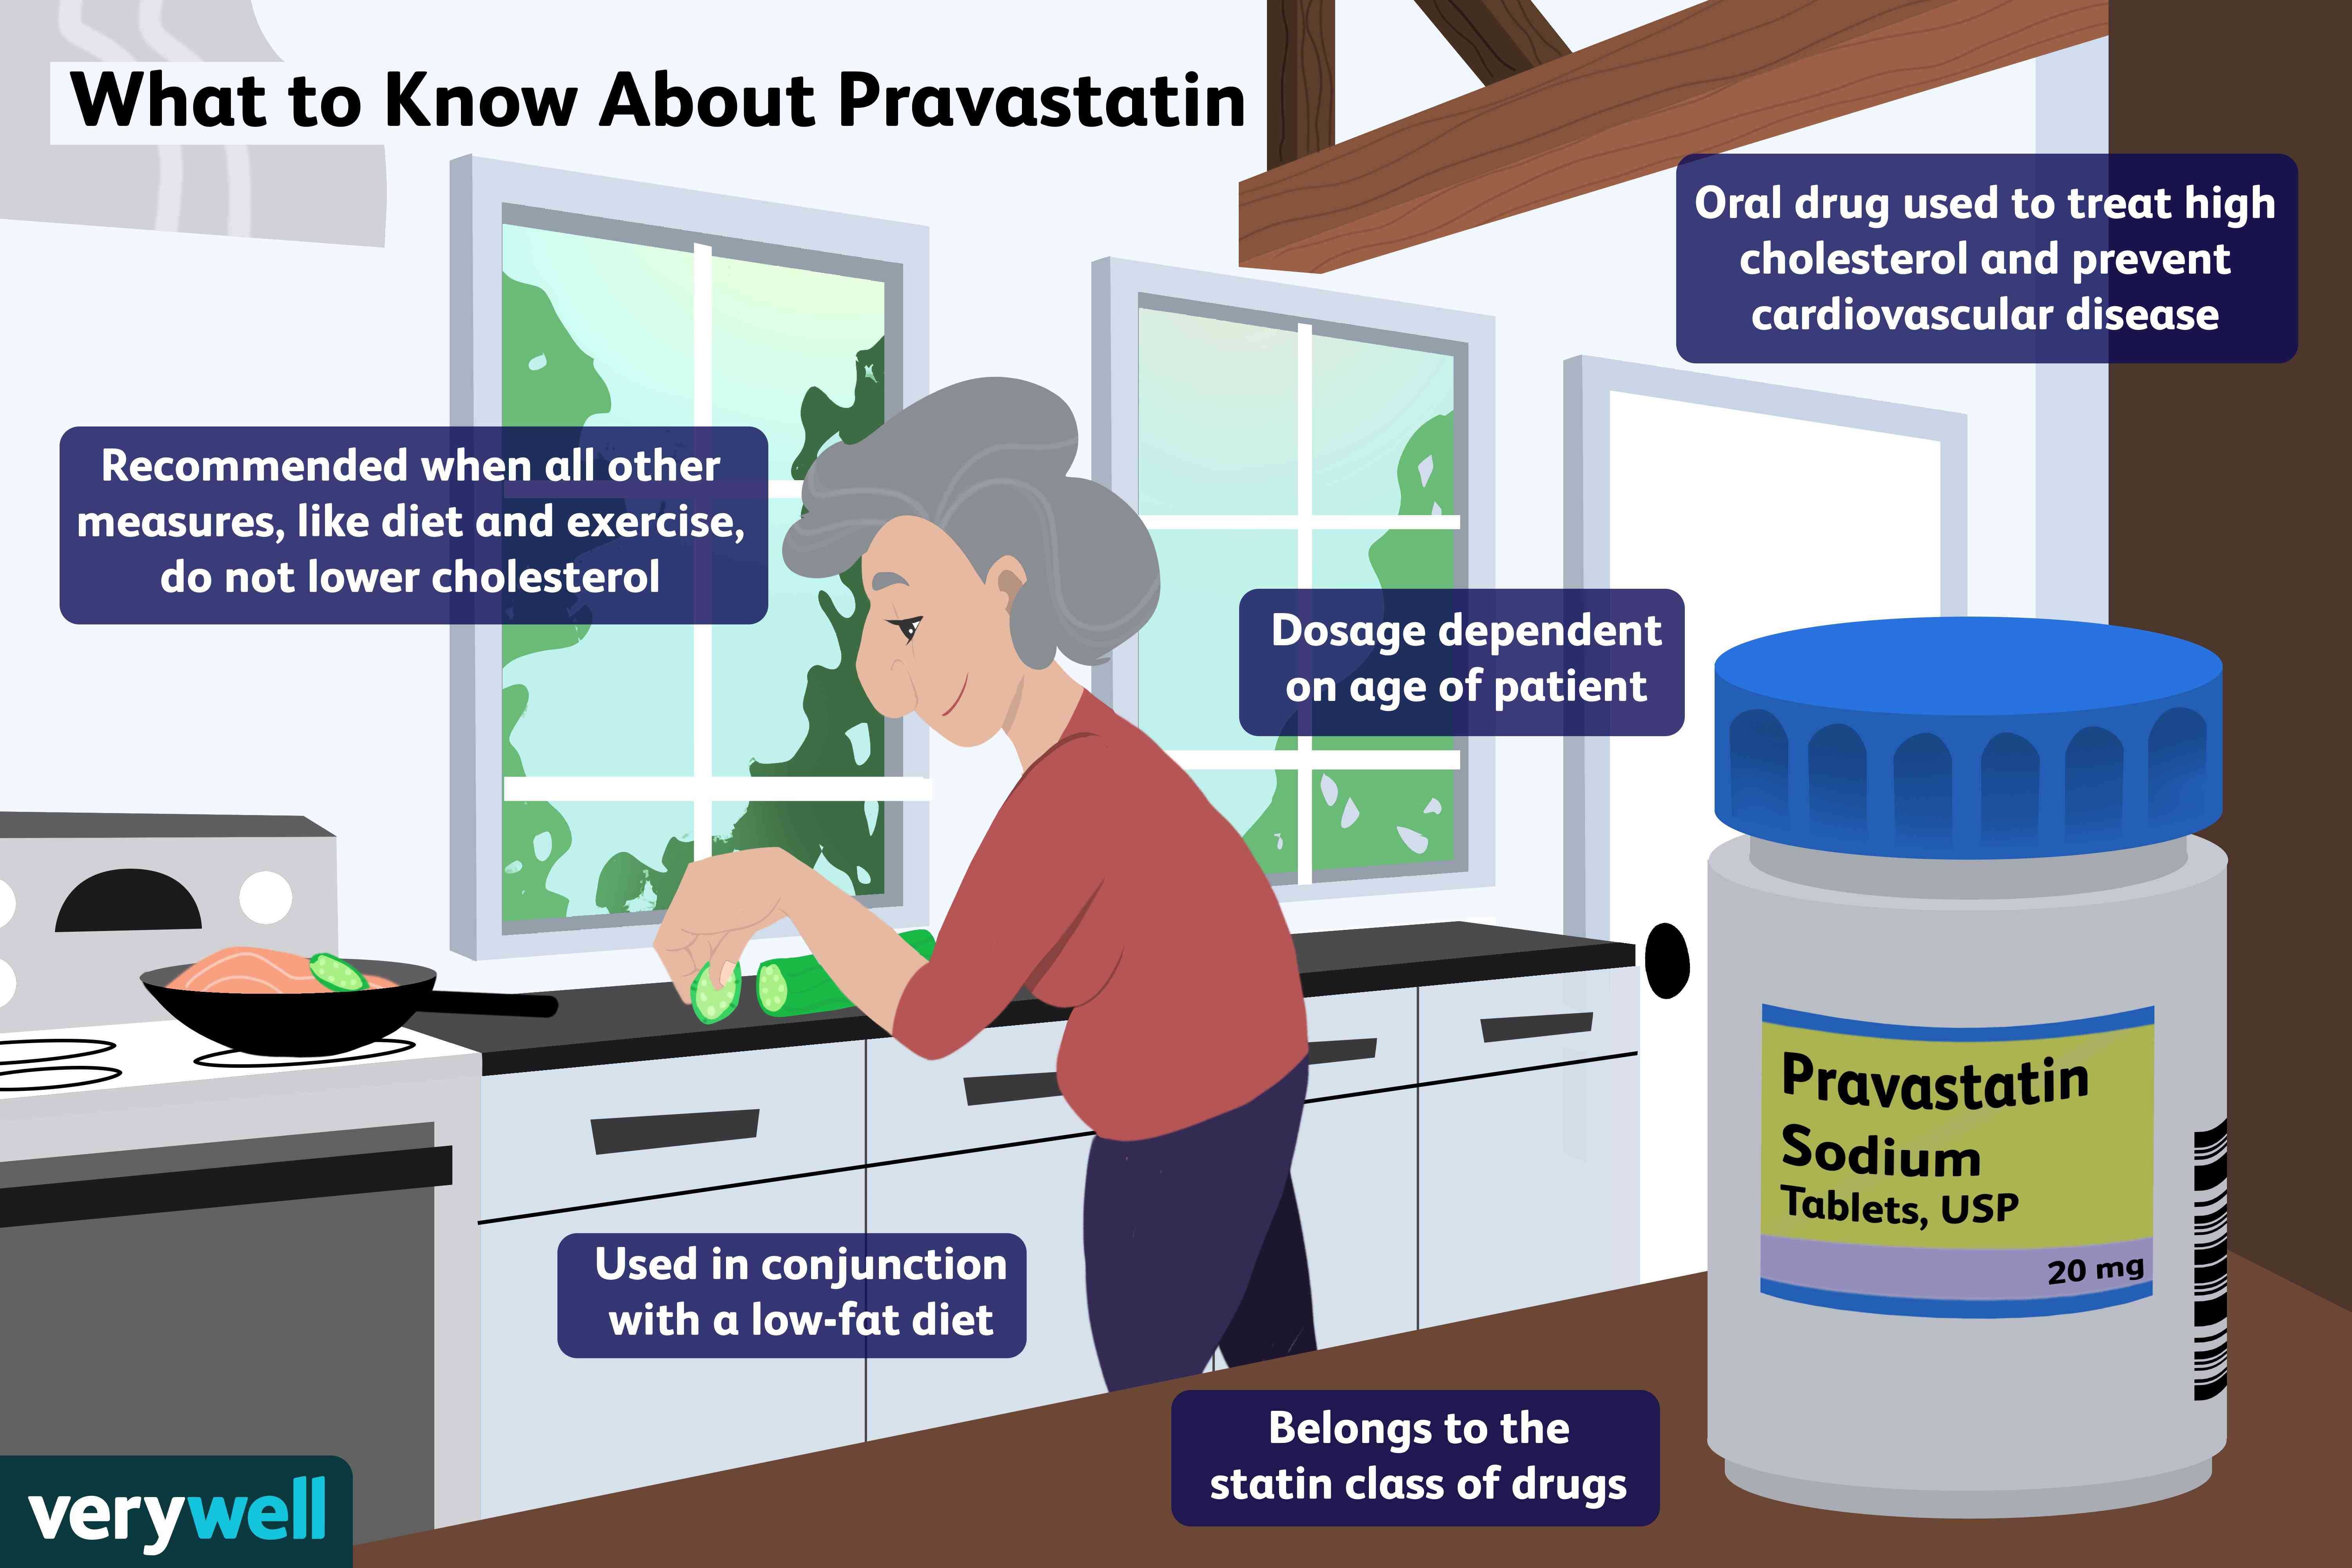 What to know about pravastatin.